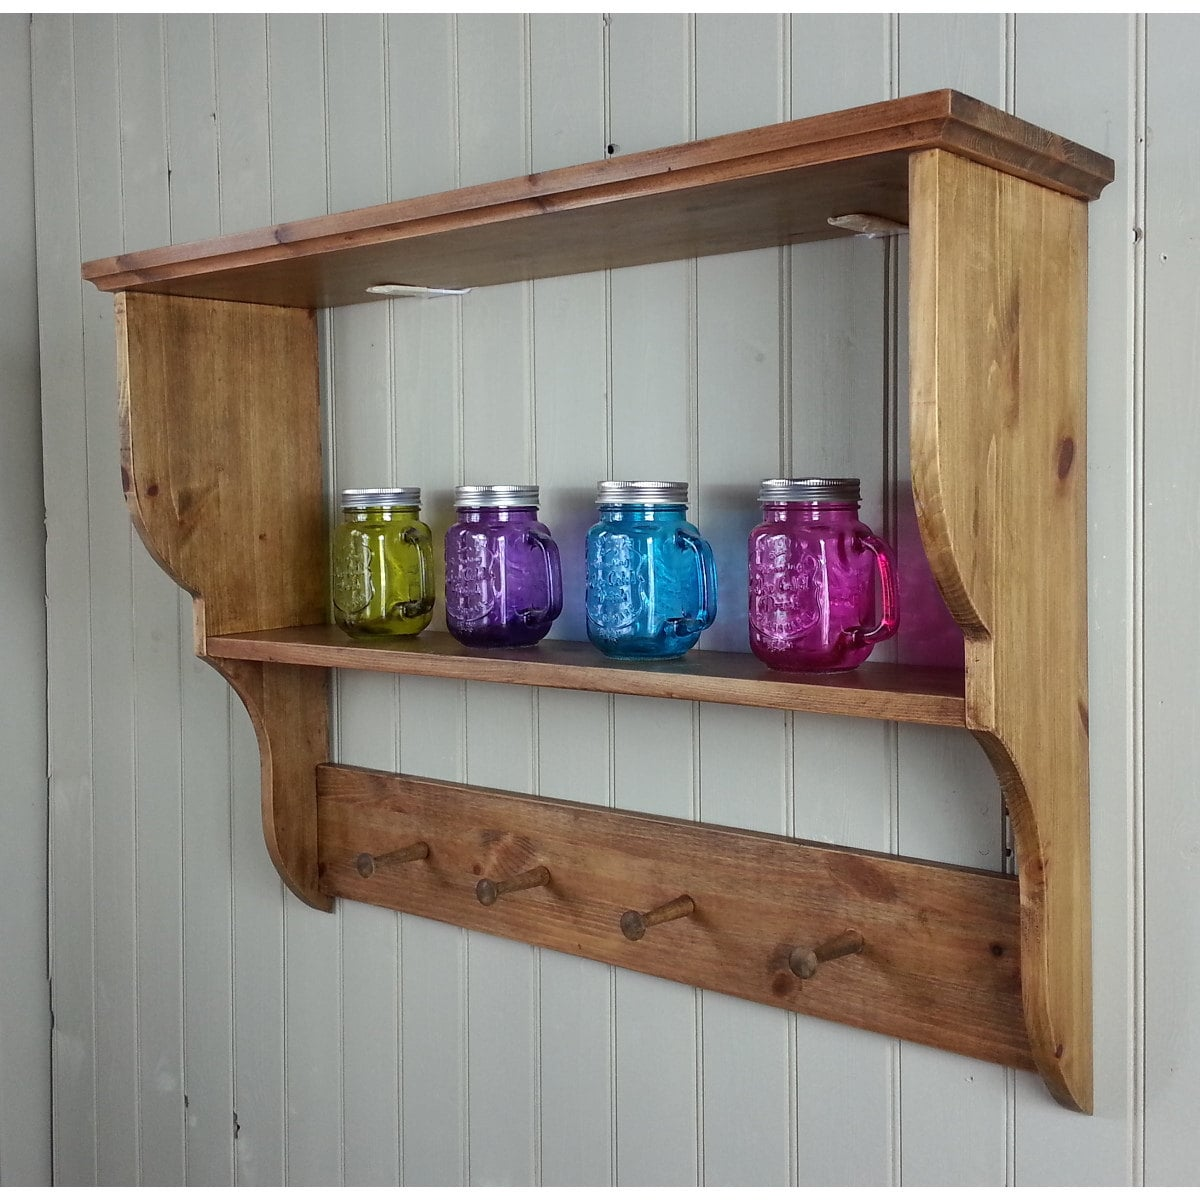 Kitchen Shelves Wall Mounted: Coat Rack Shelf Wall Mounted Wooden Hall Kitchen Or